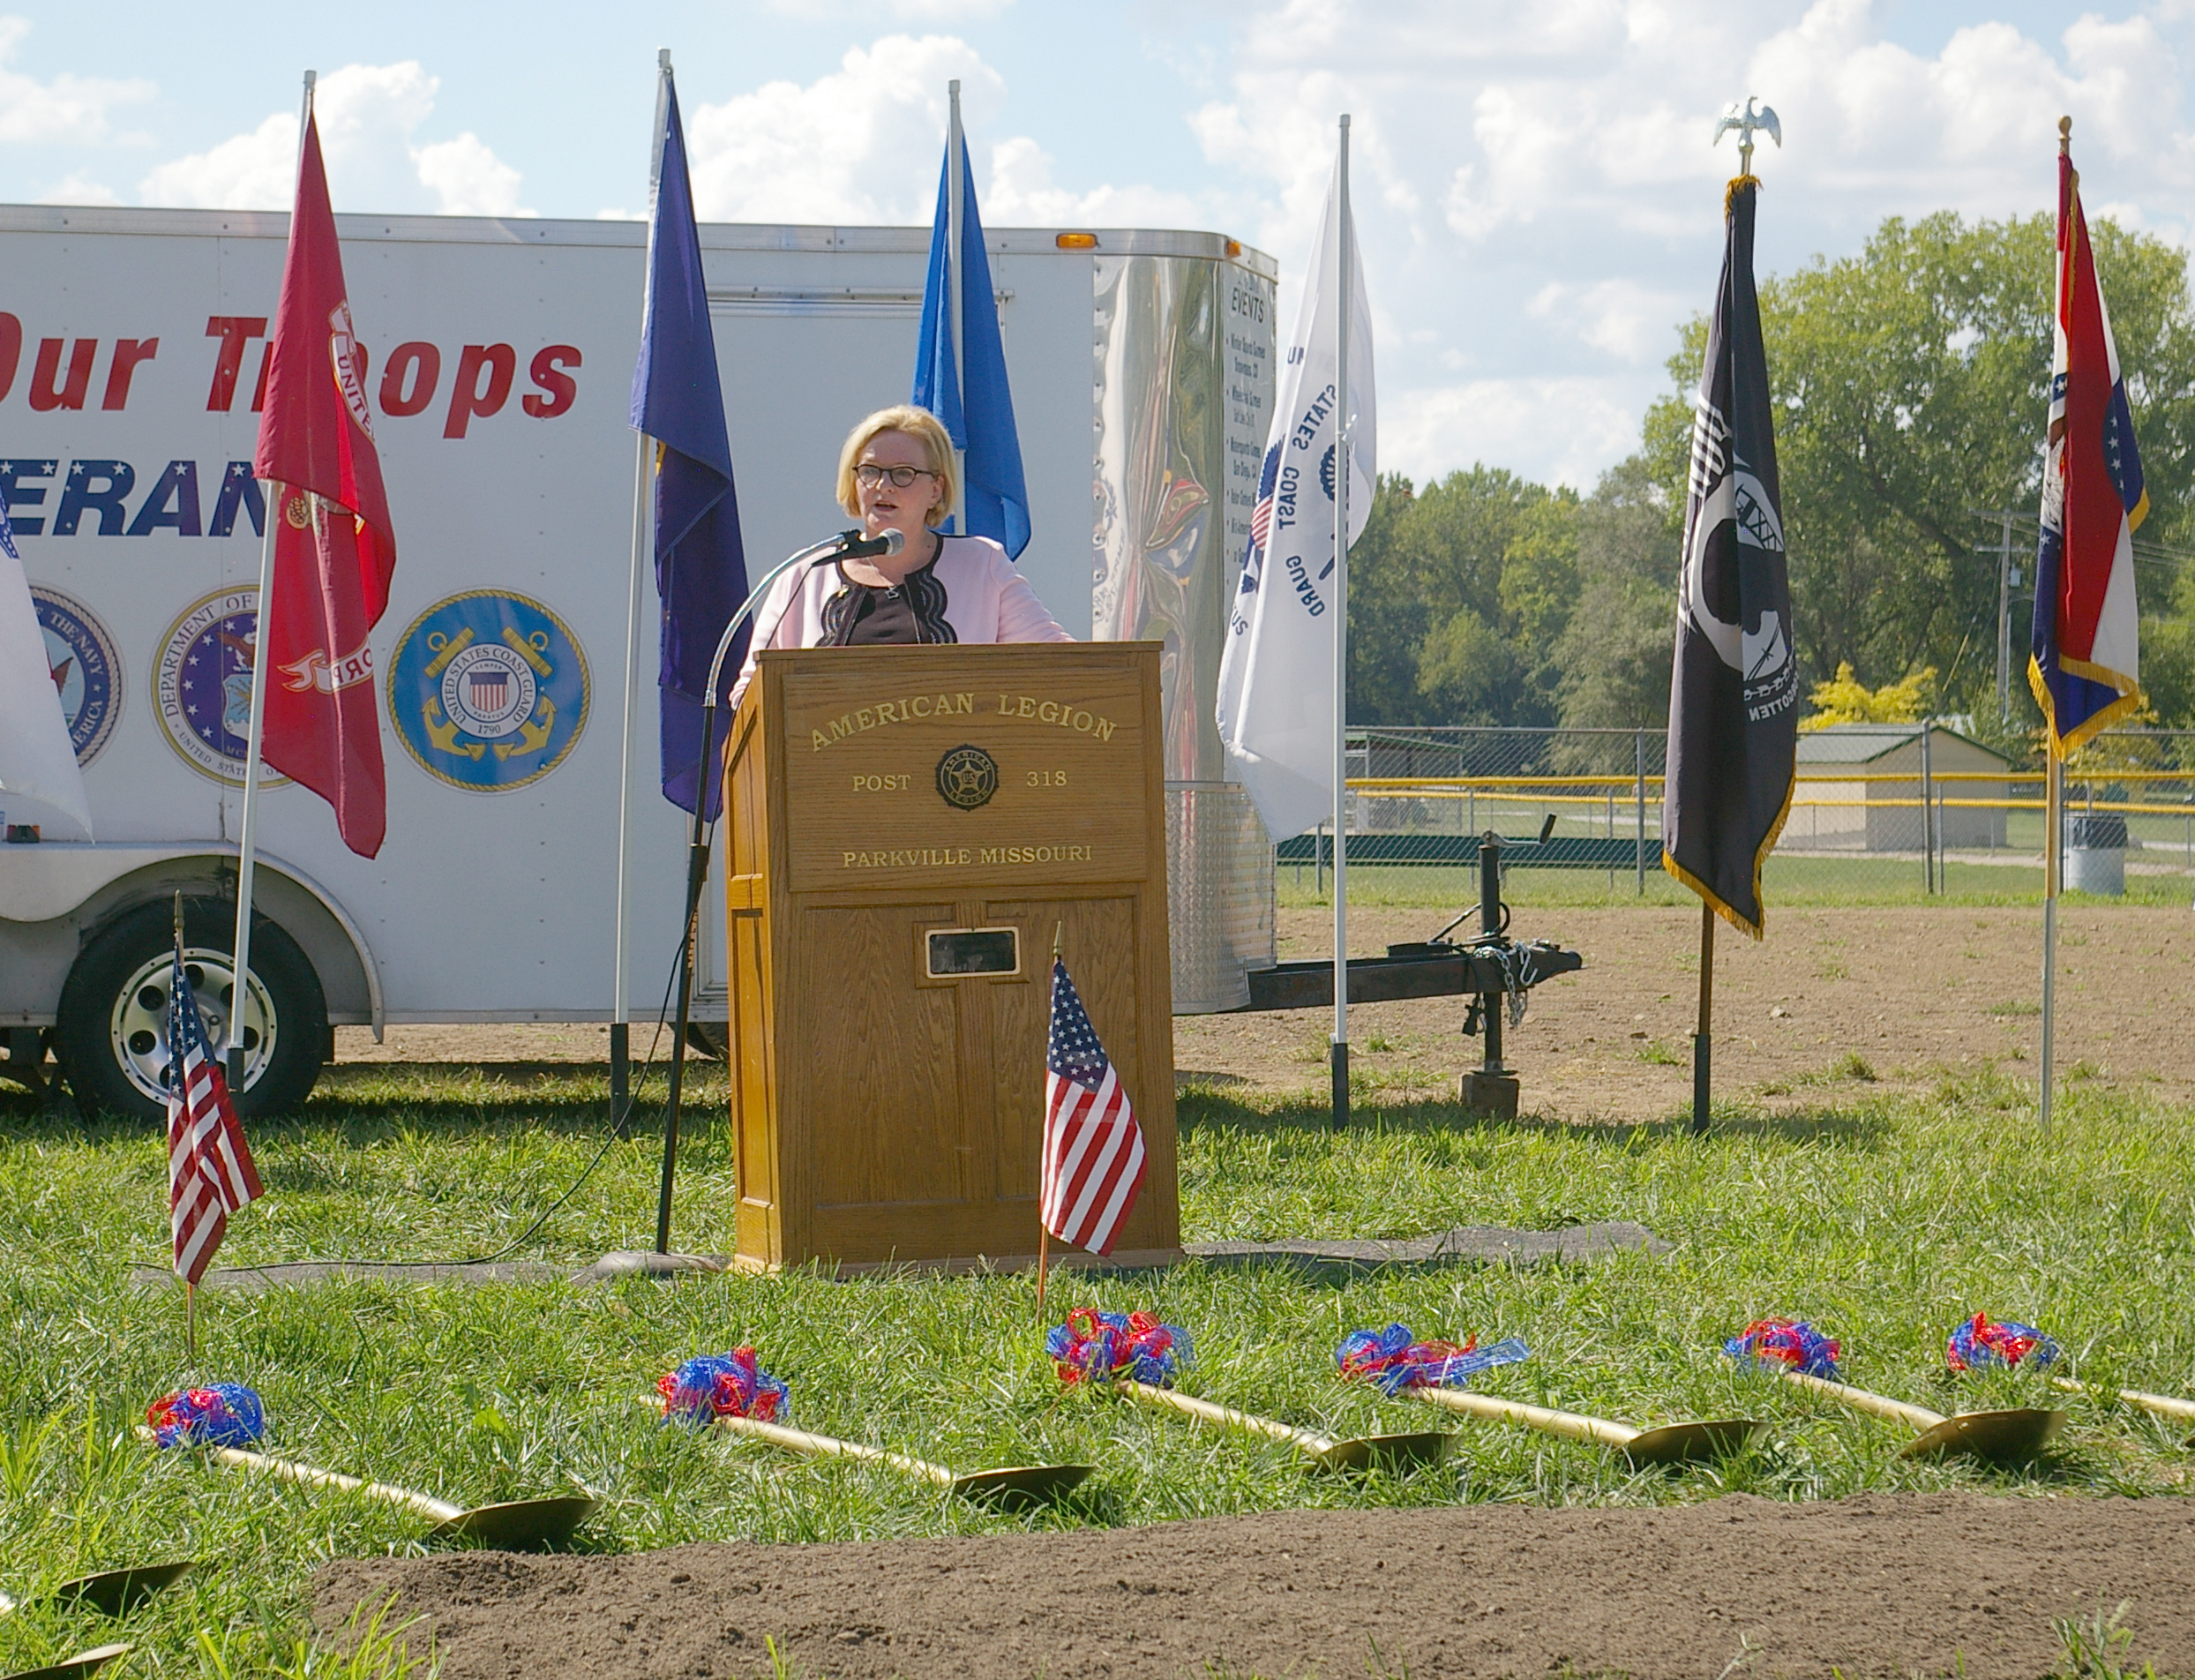 JEANETTE FAUBION/Citizen photo U.S. Sen. Claire McCaskill was one of the speakers at the groundbreaking event held last weekend in Parkville.